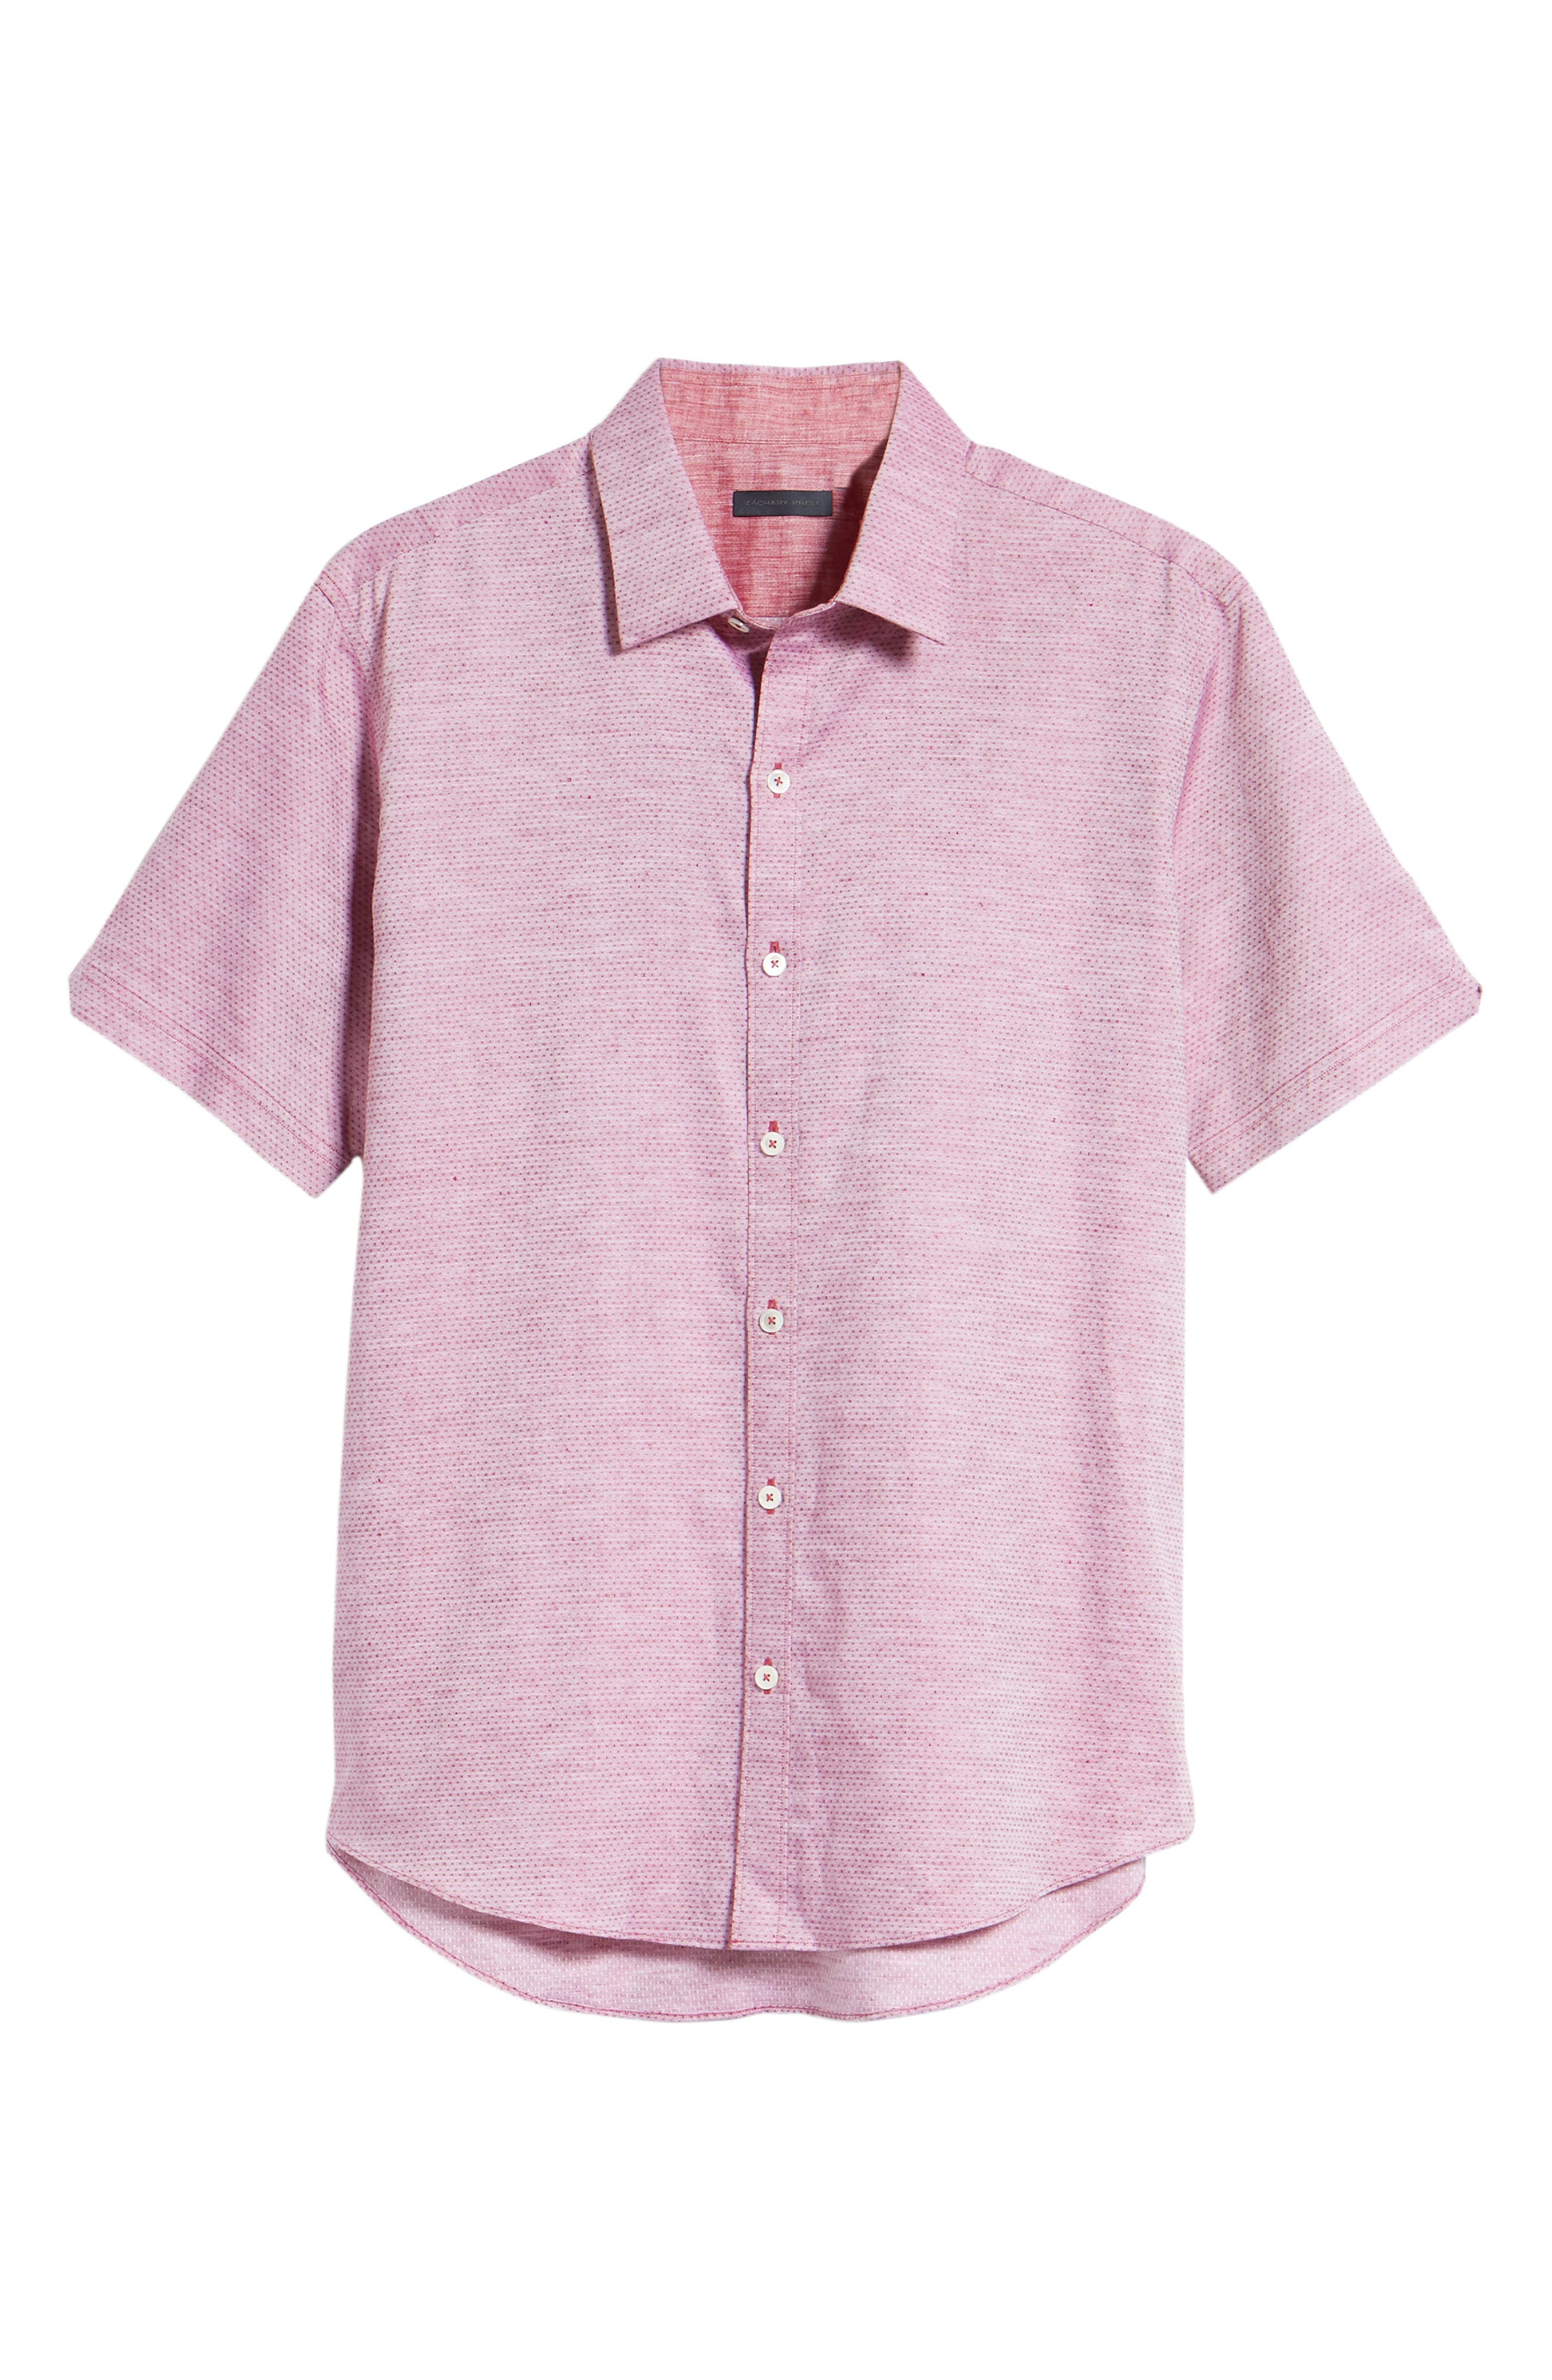 Wilcox Regular Fit Dobby Sport Shirt,                             Alternate thumbnail 6, color,                             Pink